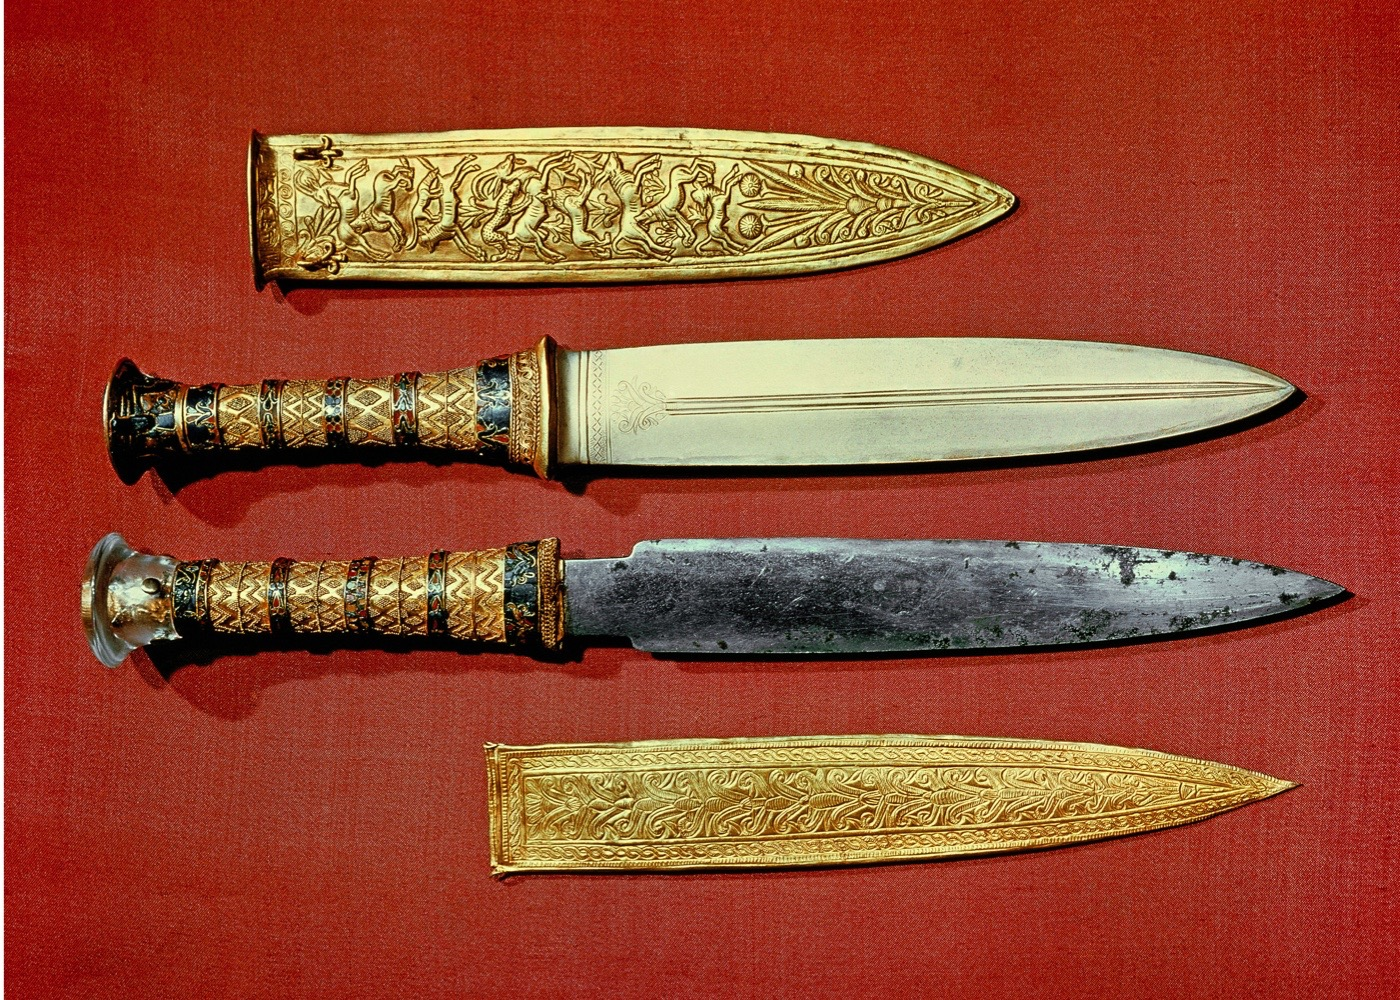 ARM2JN The king's two daggers, one with a blade of gold, the other of iron, from the tomb of the pharaoh Tutankhamun